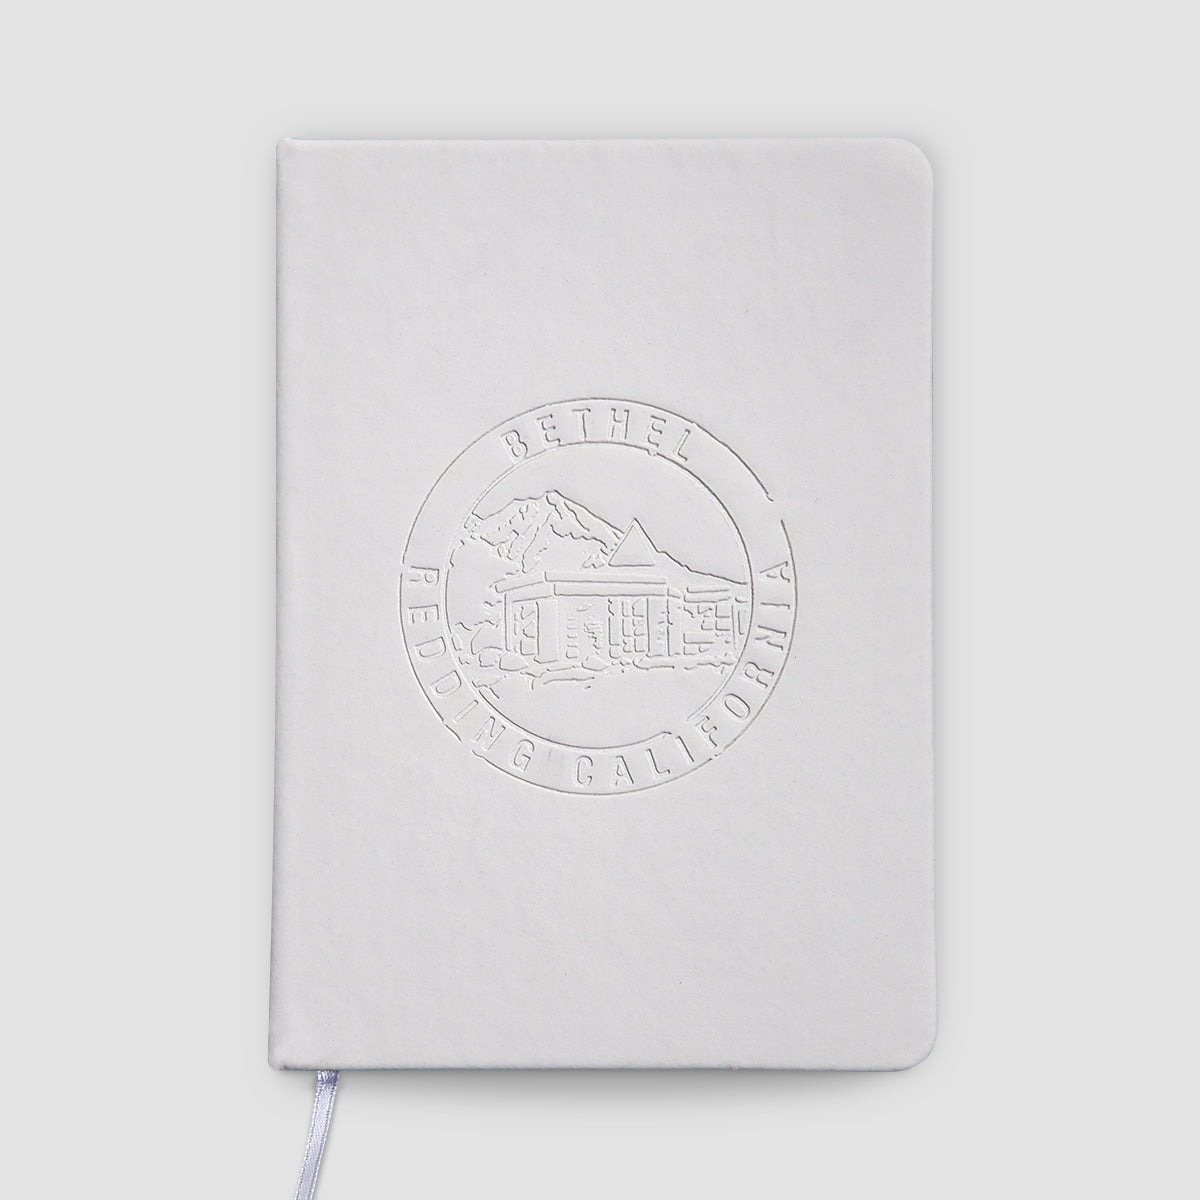 Bethel Stamp Journal